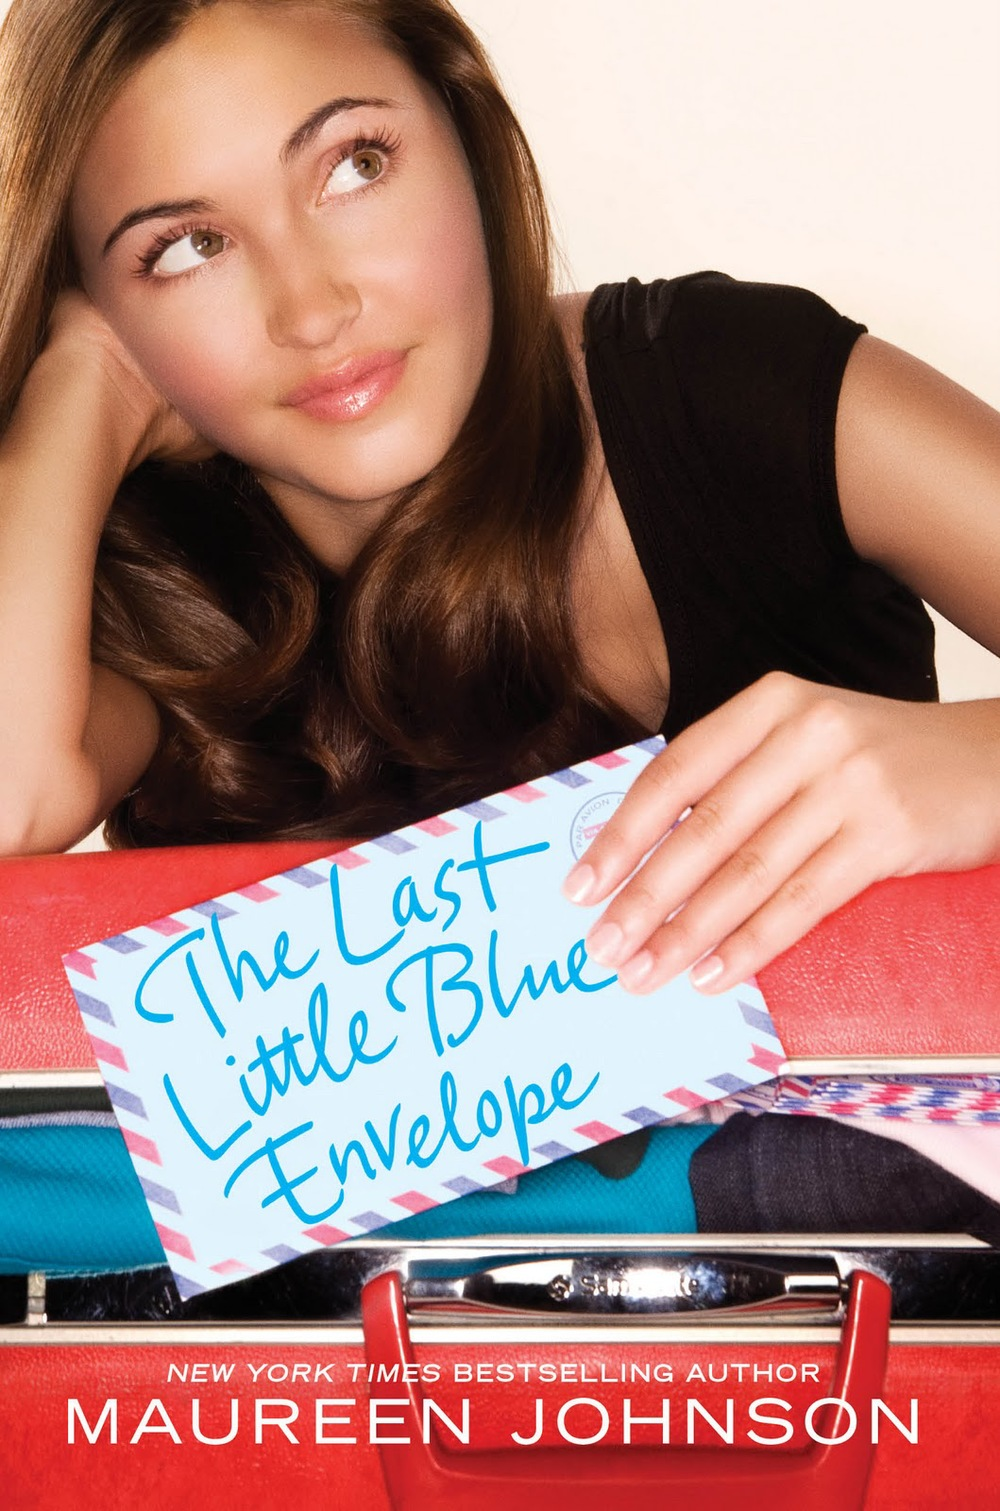 The Last Little Blue Envelope by Maureen Johnson (Audio)  Amazon  |  Goodreads